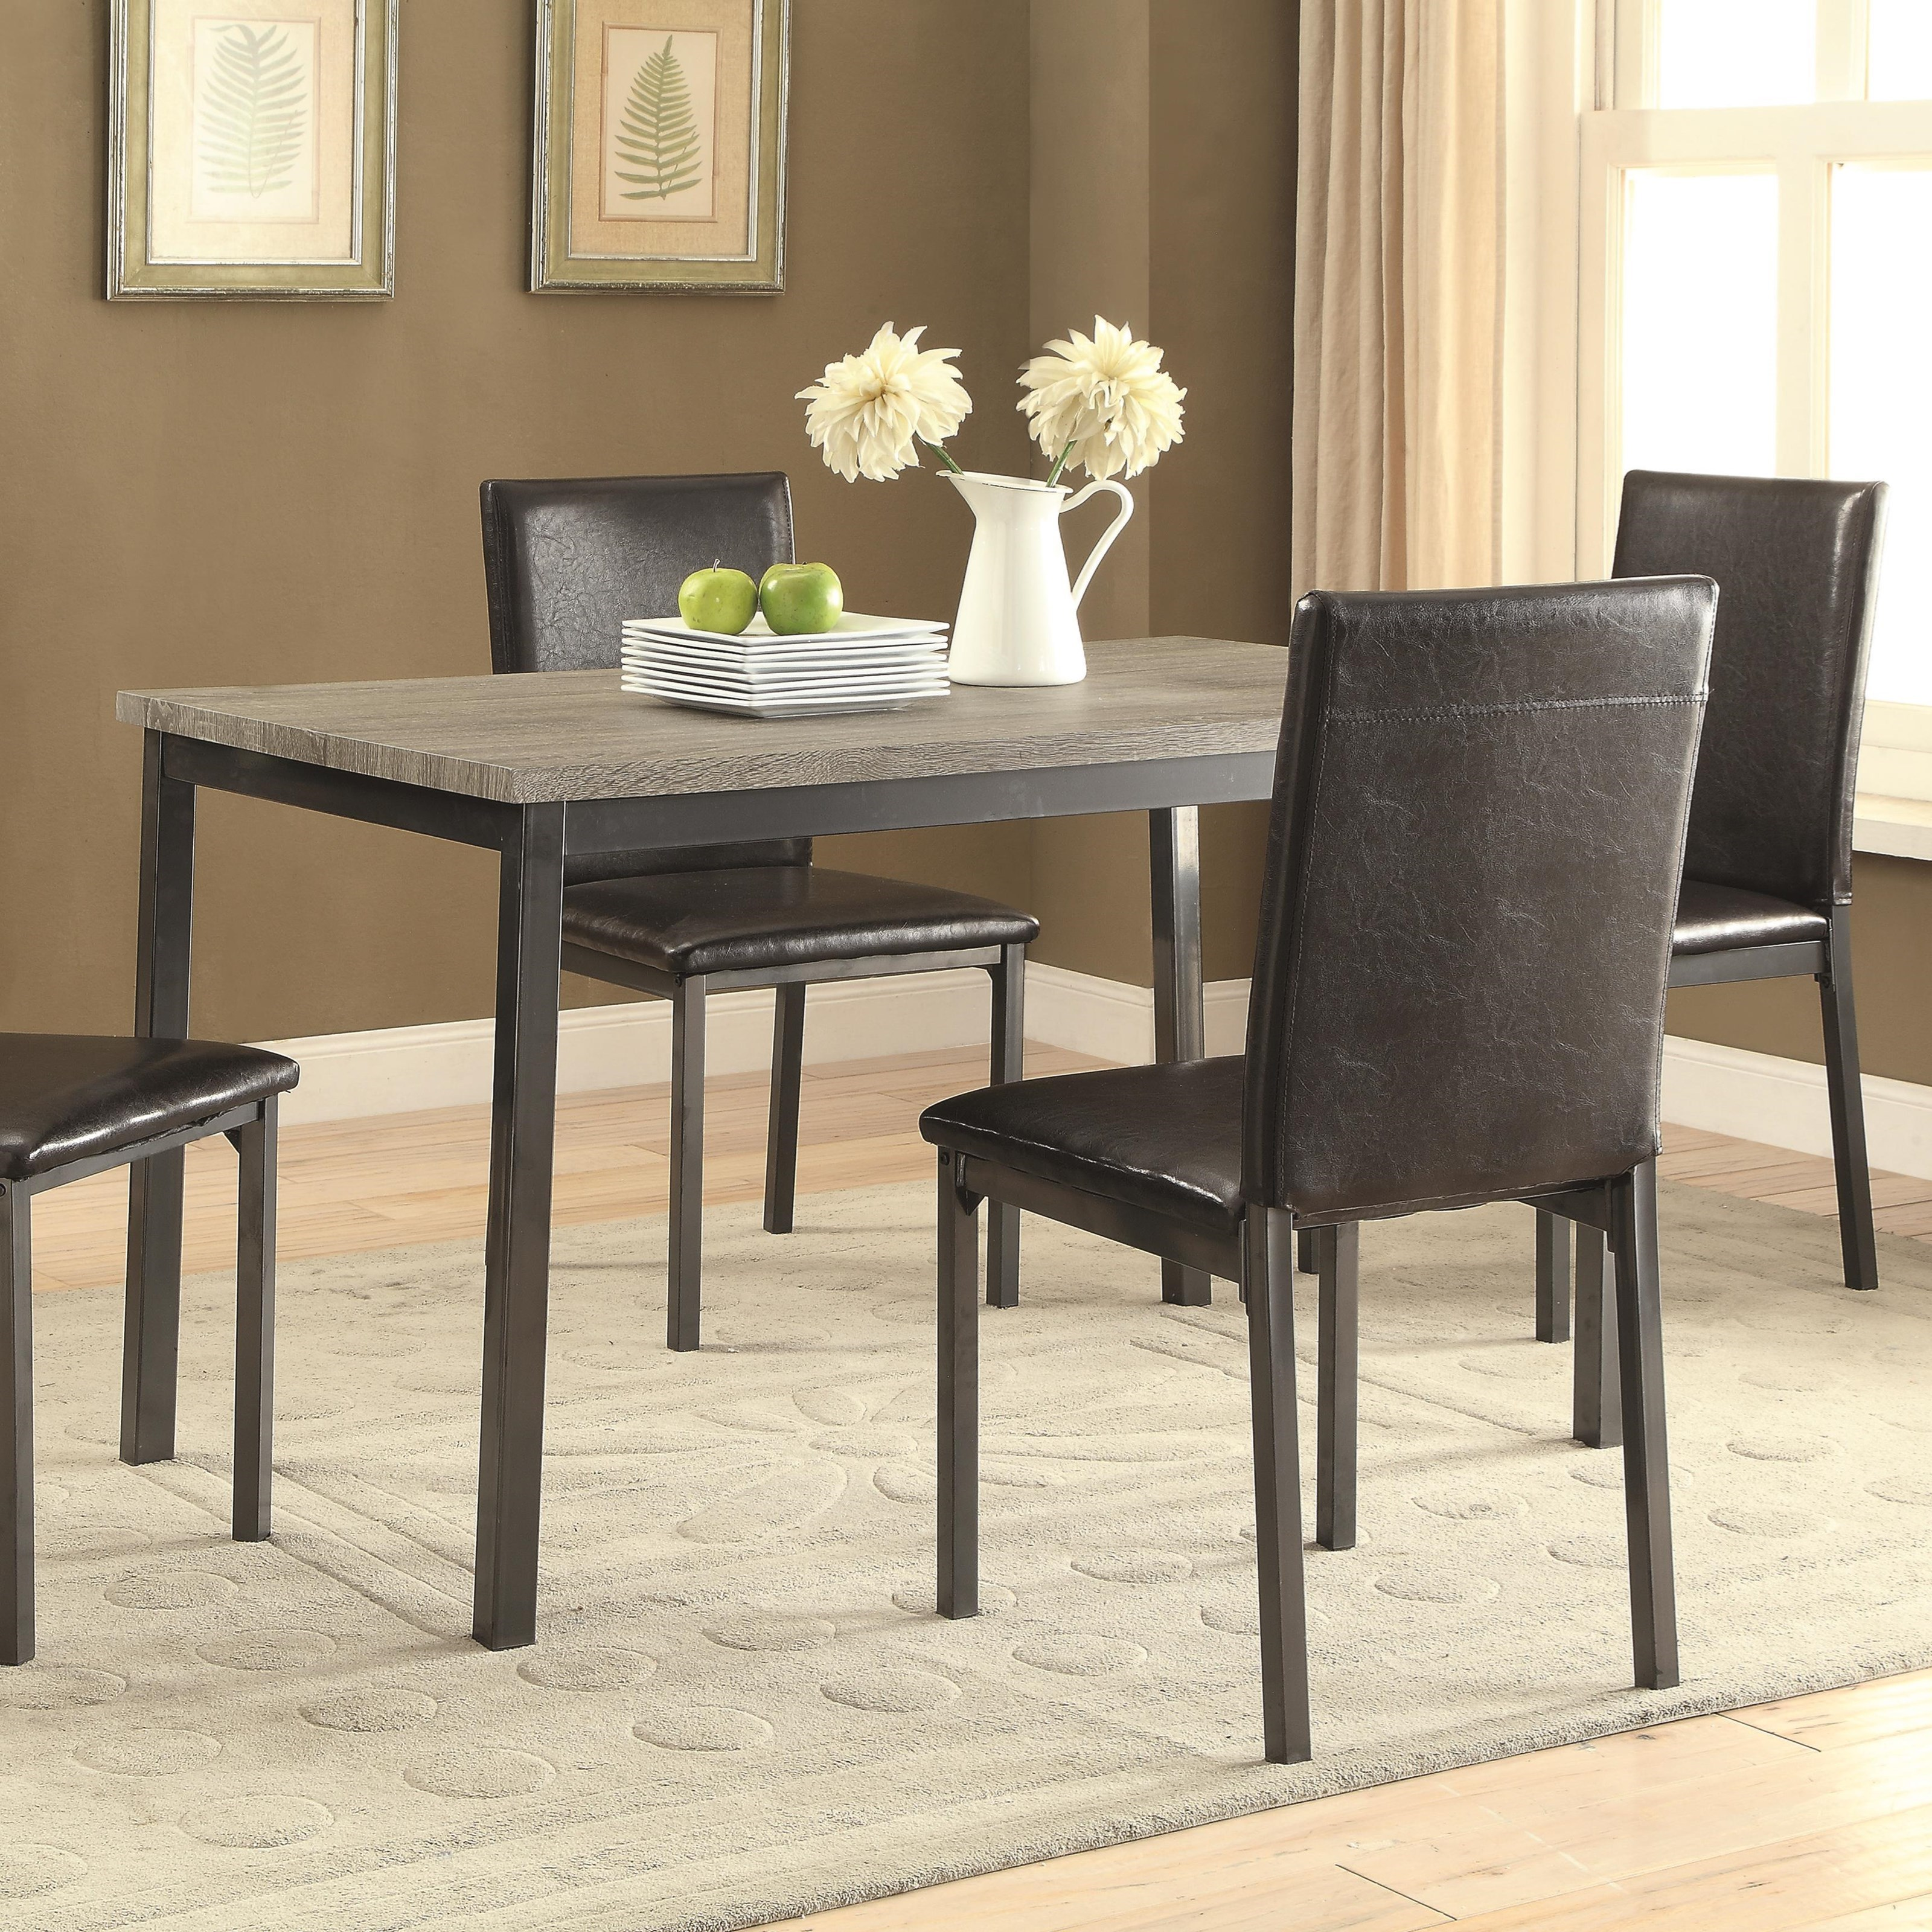 coaster garza dining table with four legs